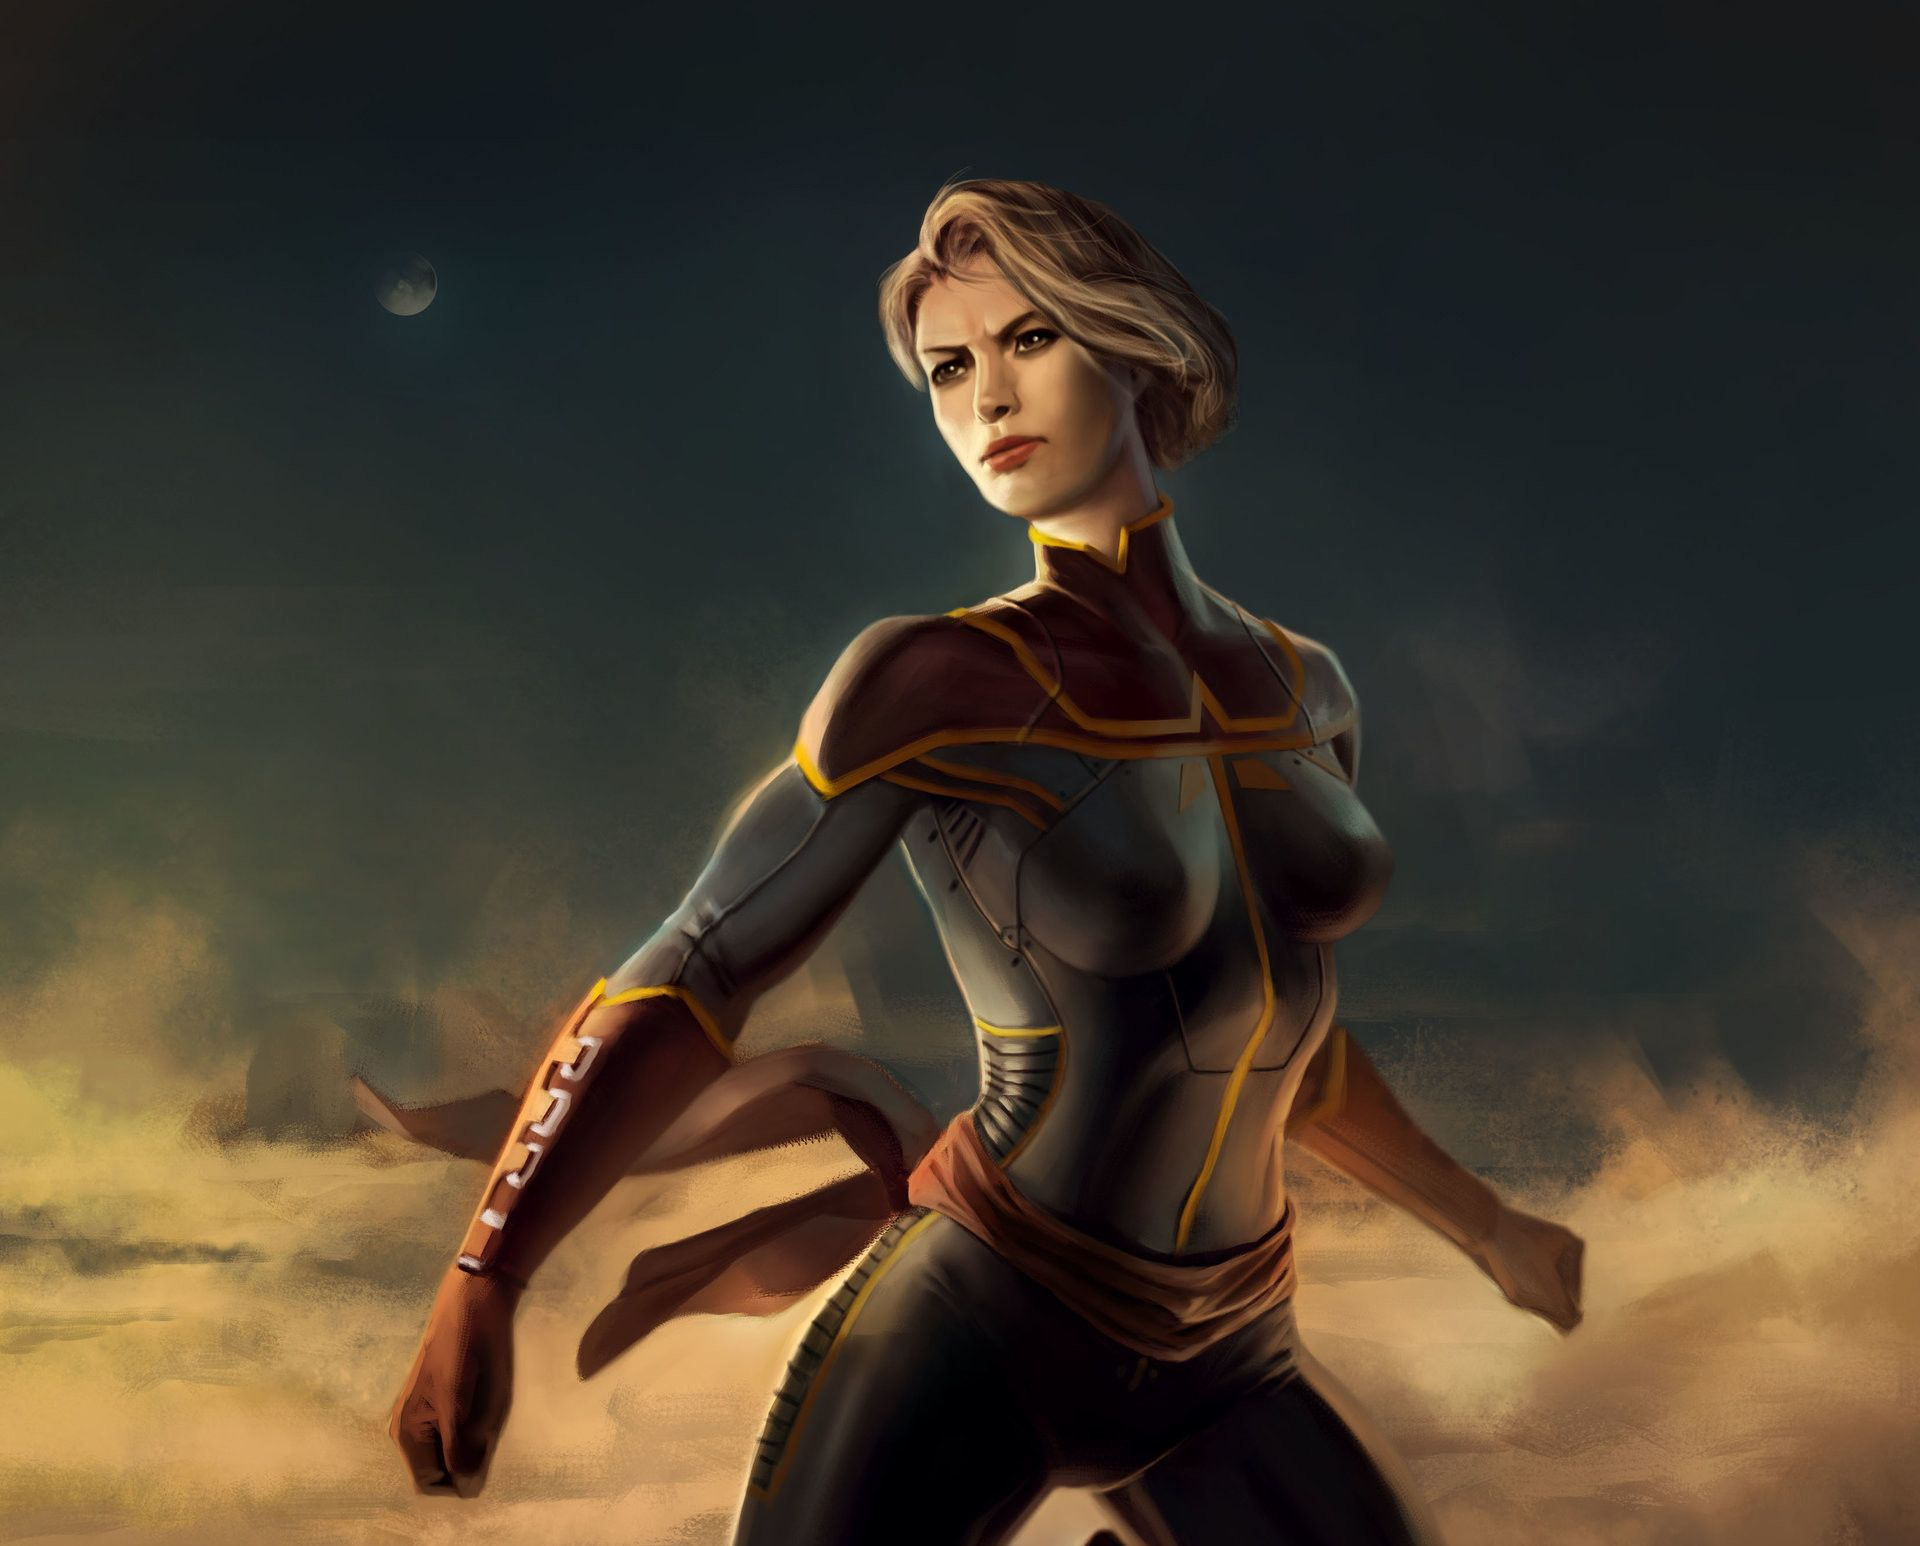 1920x1546 62+ Captain Marvel Wallpapers on WallpaperPlay